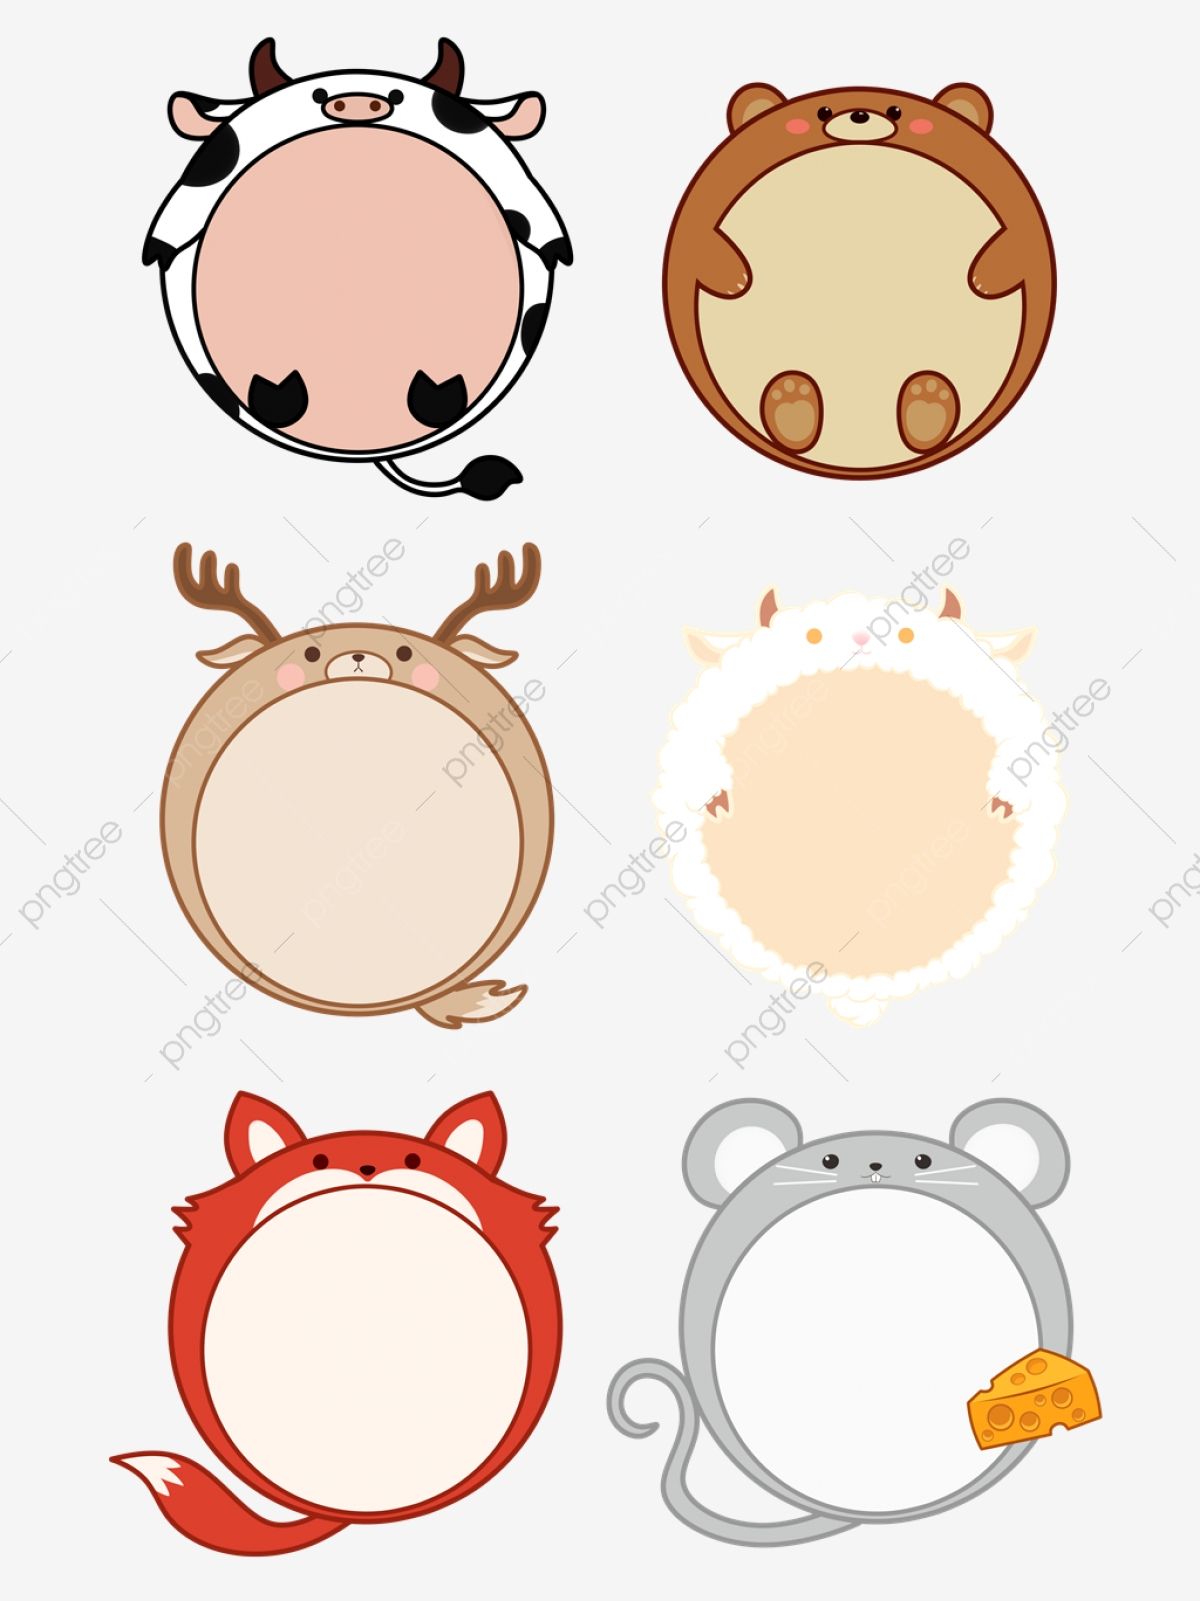 Cute Animals Png : animals, Animals, Vector,, Clipart, Transparent, Background, Download, Pngtree